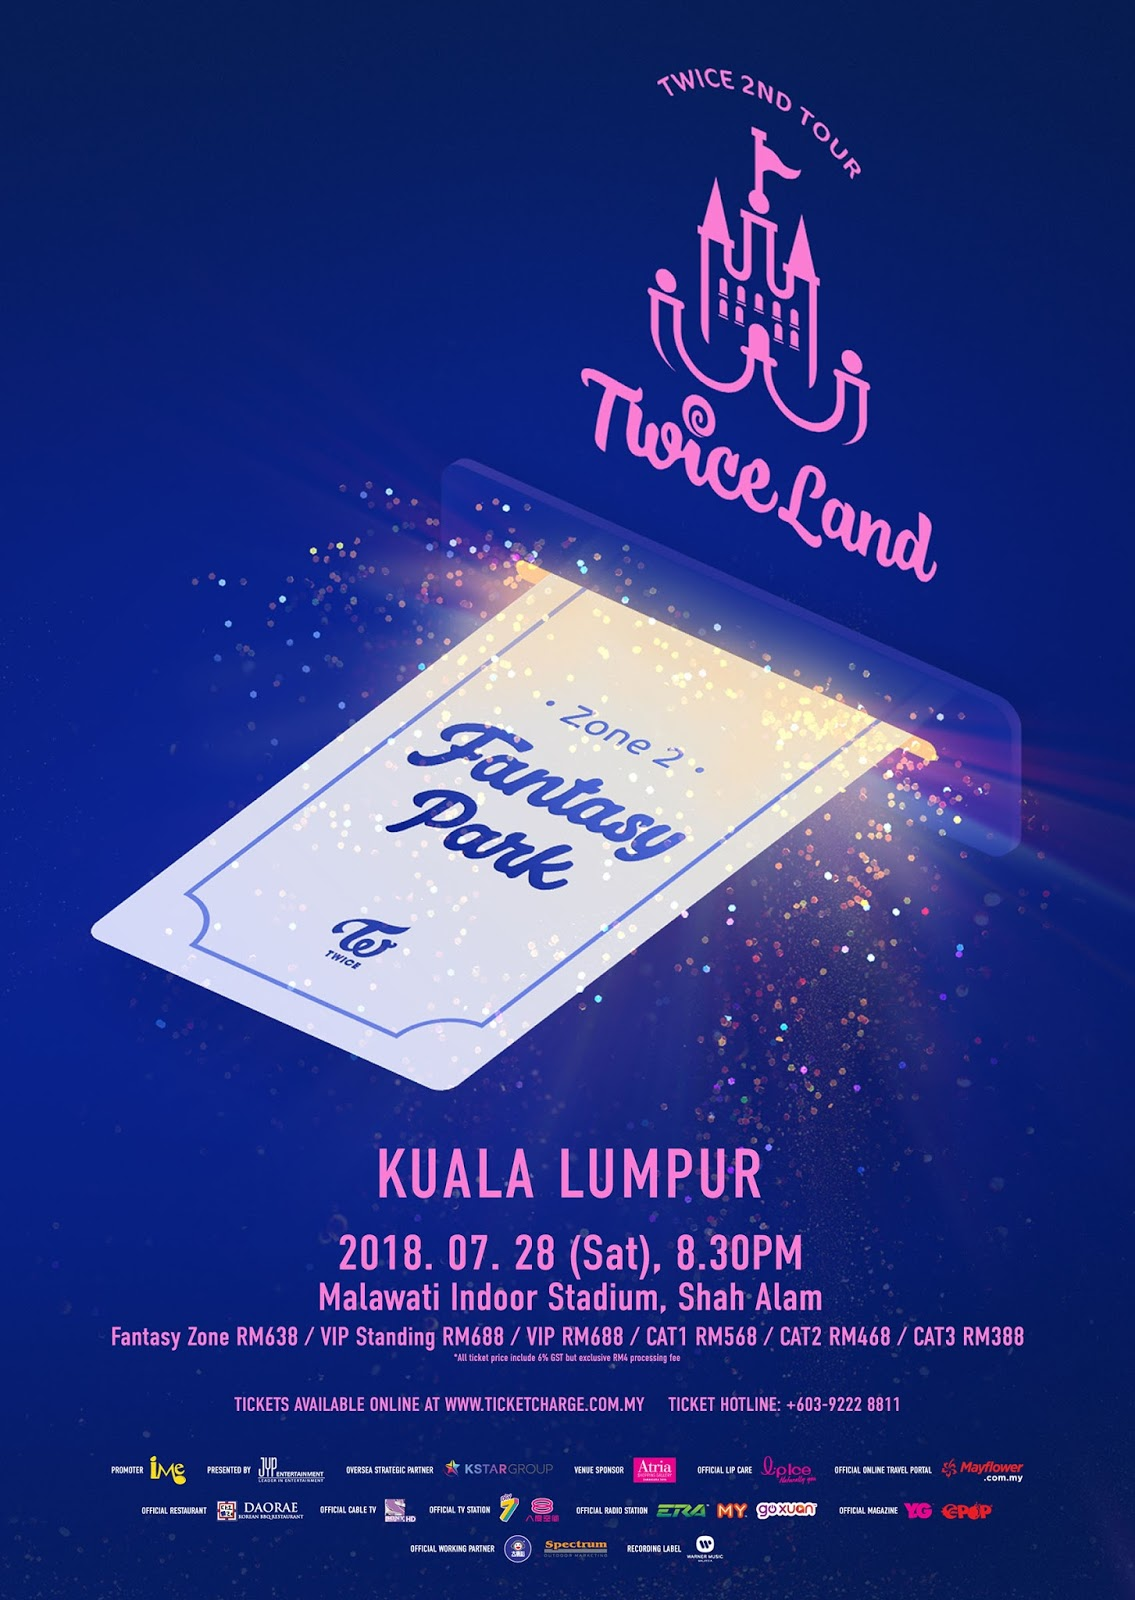 TWICE'S TWICELAND ZONE 2 FANTASY PARK IN KL TWICE 728 首度来马开唱周六门票首卖